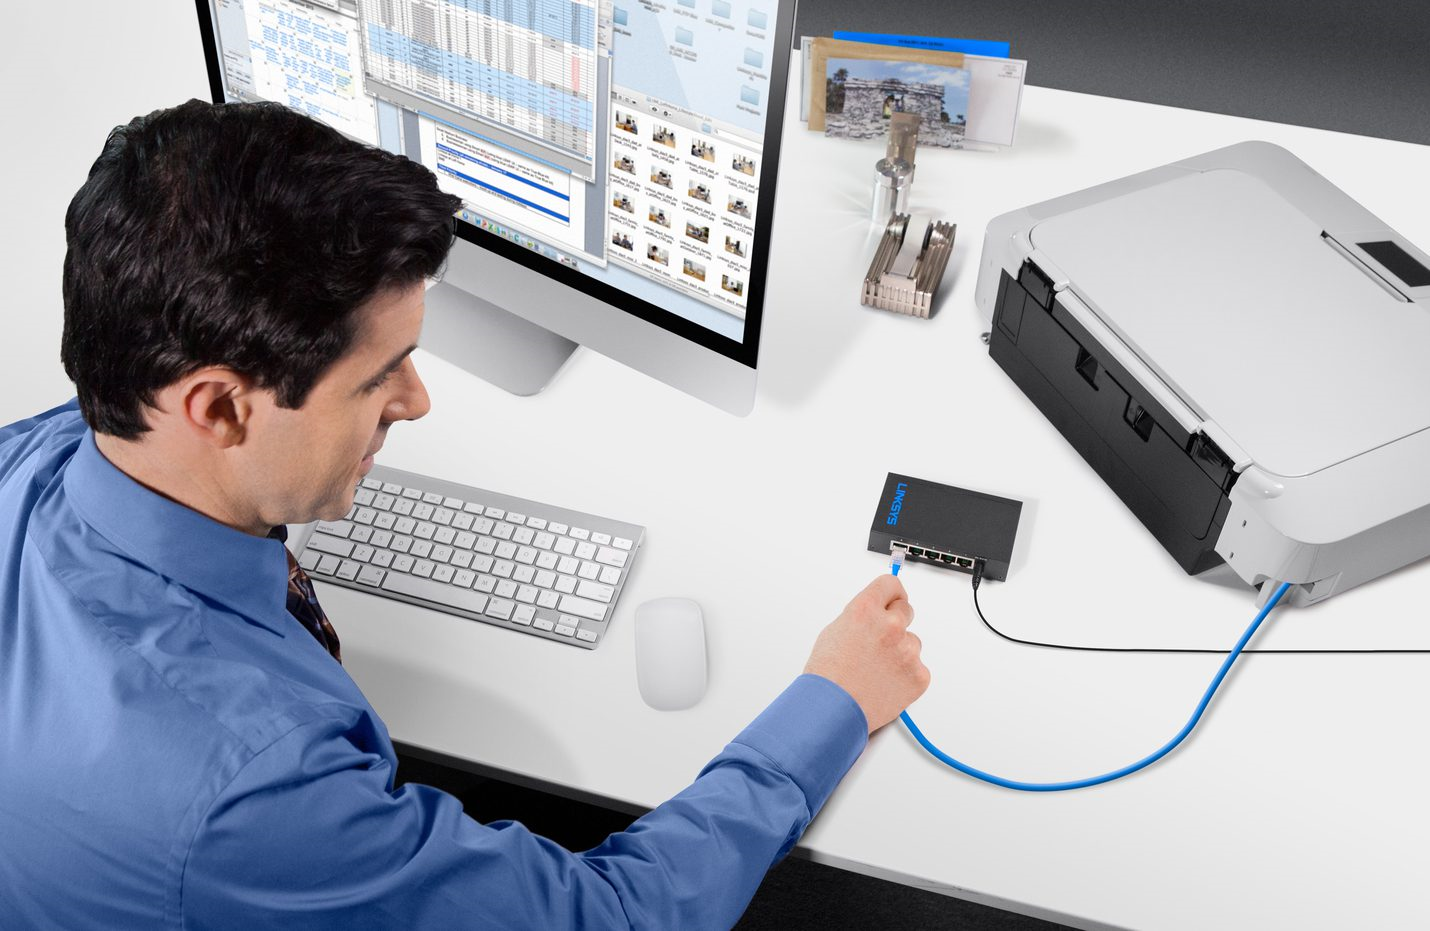 Does Your Business Need an Unmanaged Switch, a Smart Switch, or a Managed Switch?